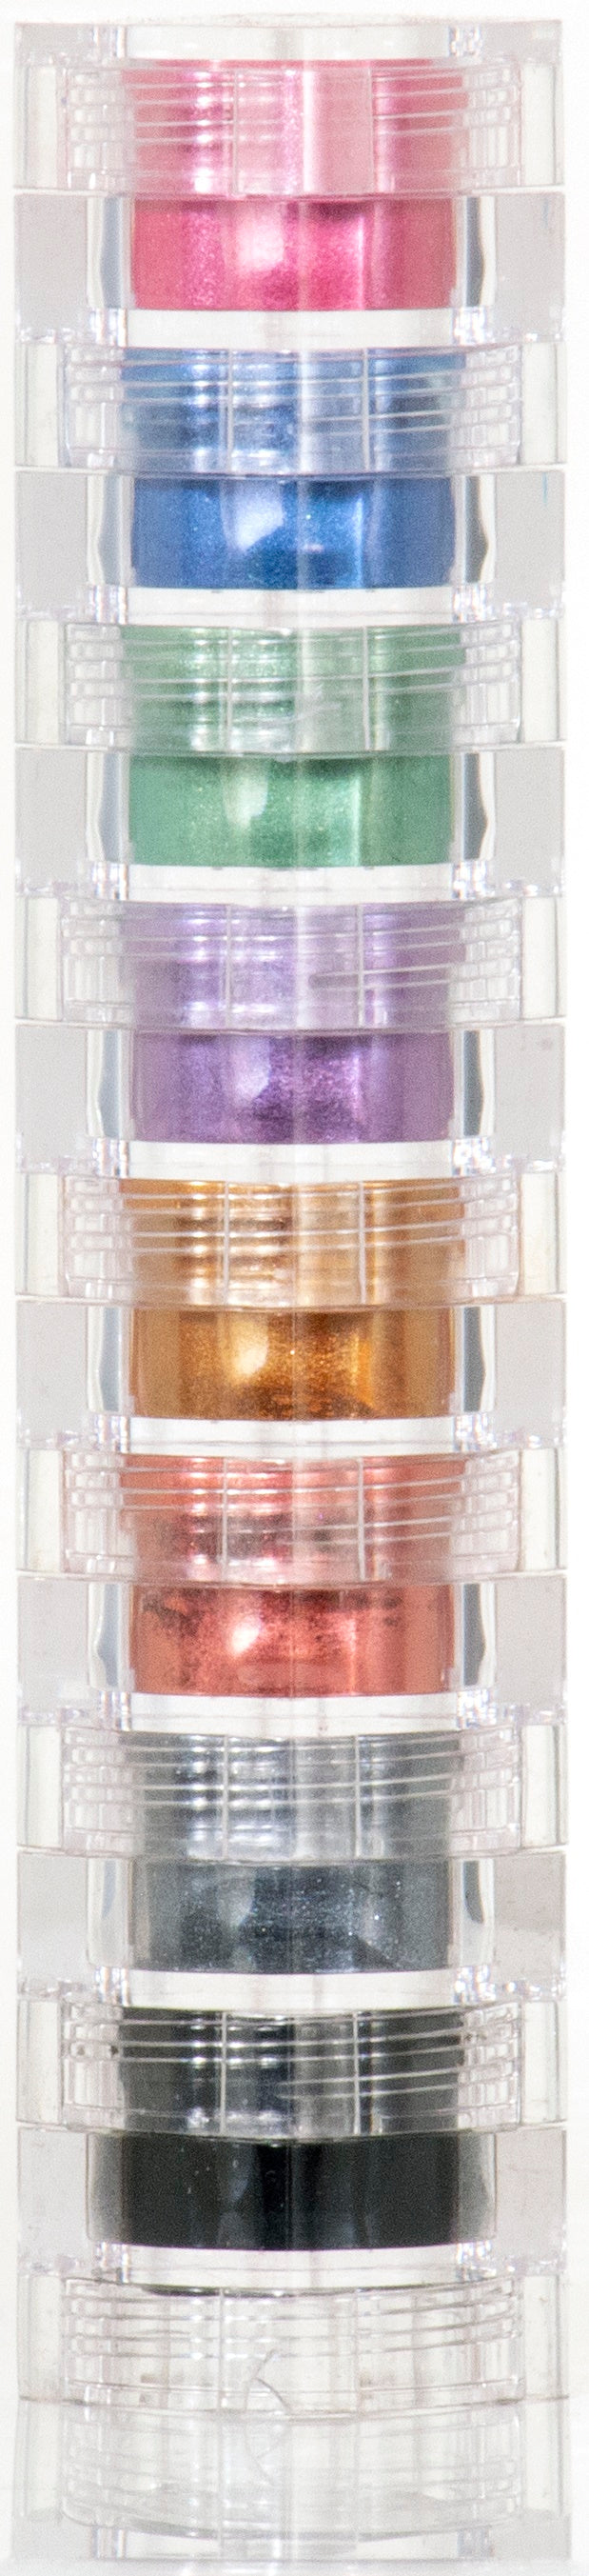 True Colors Mineral Makeup - Smokey Eye 8 Stack